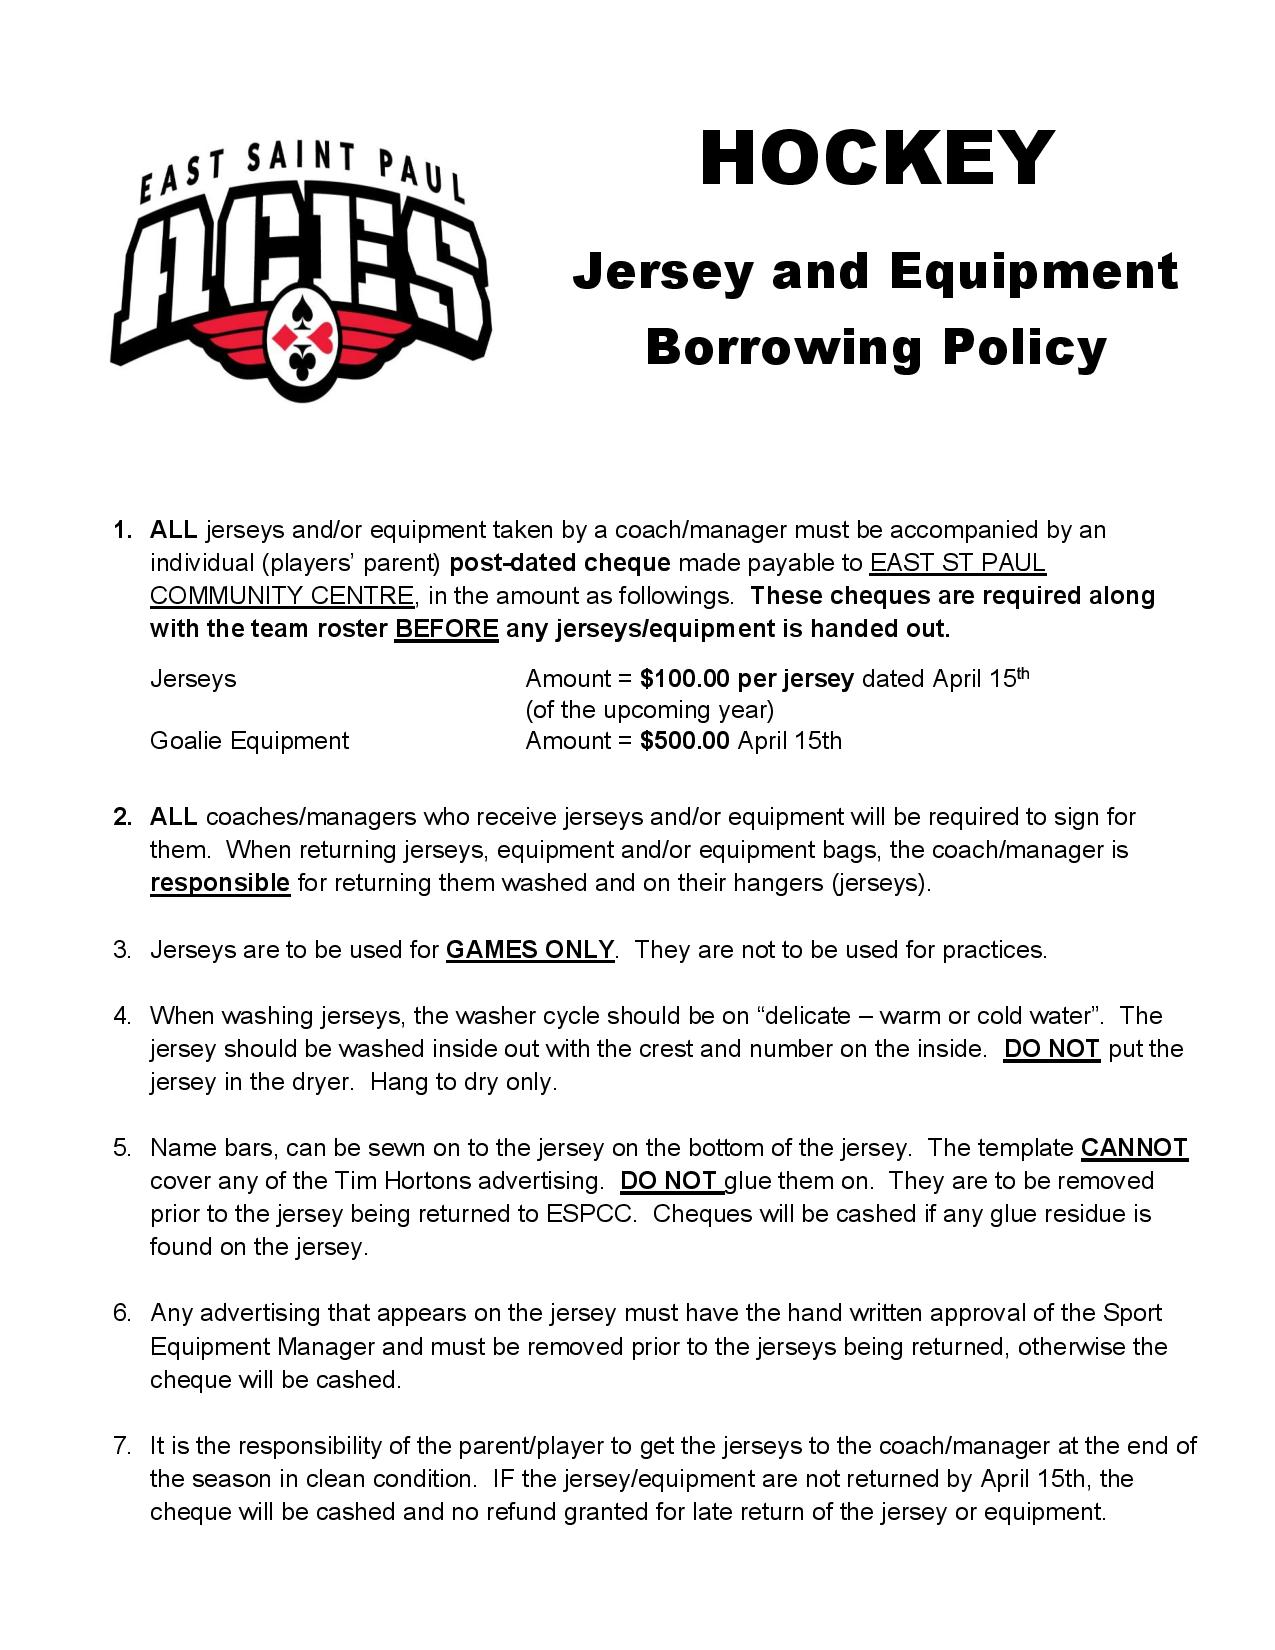 Hockey Jersey & Equip Policy